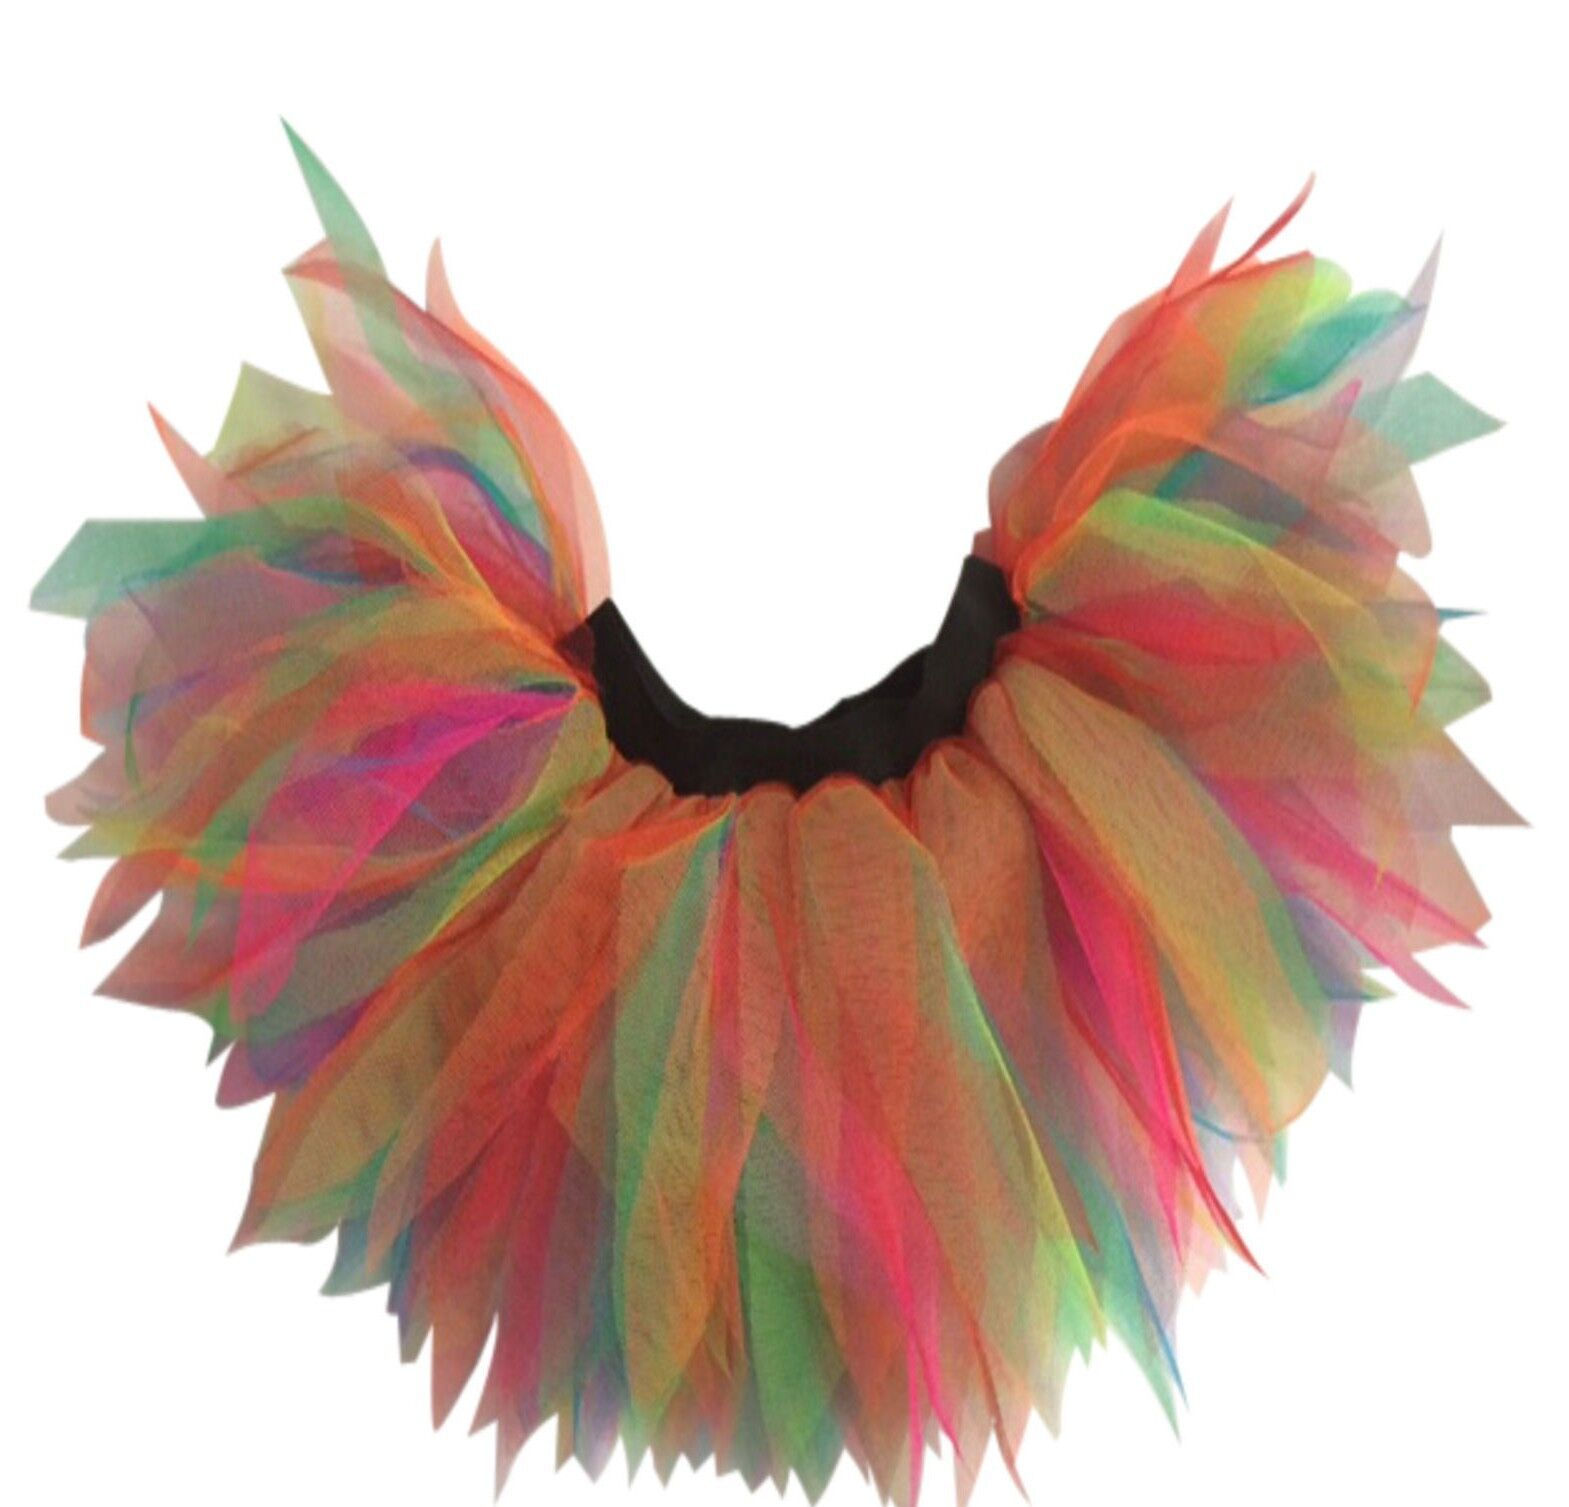 NEON PINK TUTU SKIRT I LOVE 80S FANCY DRESS HEN PARTY RAINBOW 6 LAYER ALL SIZES